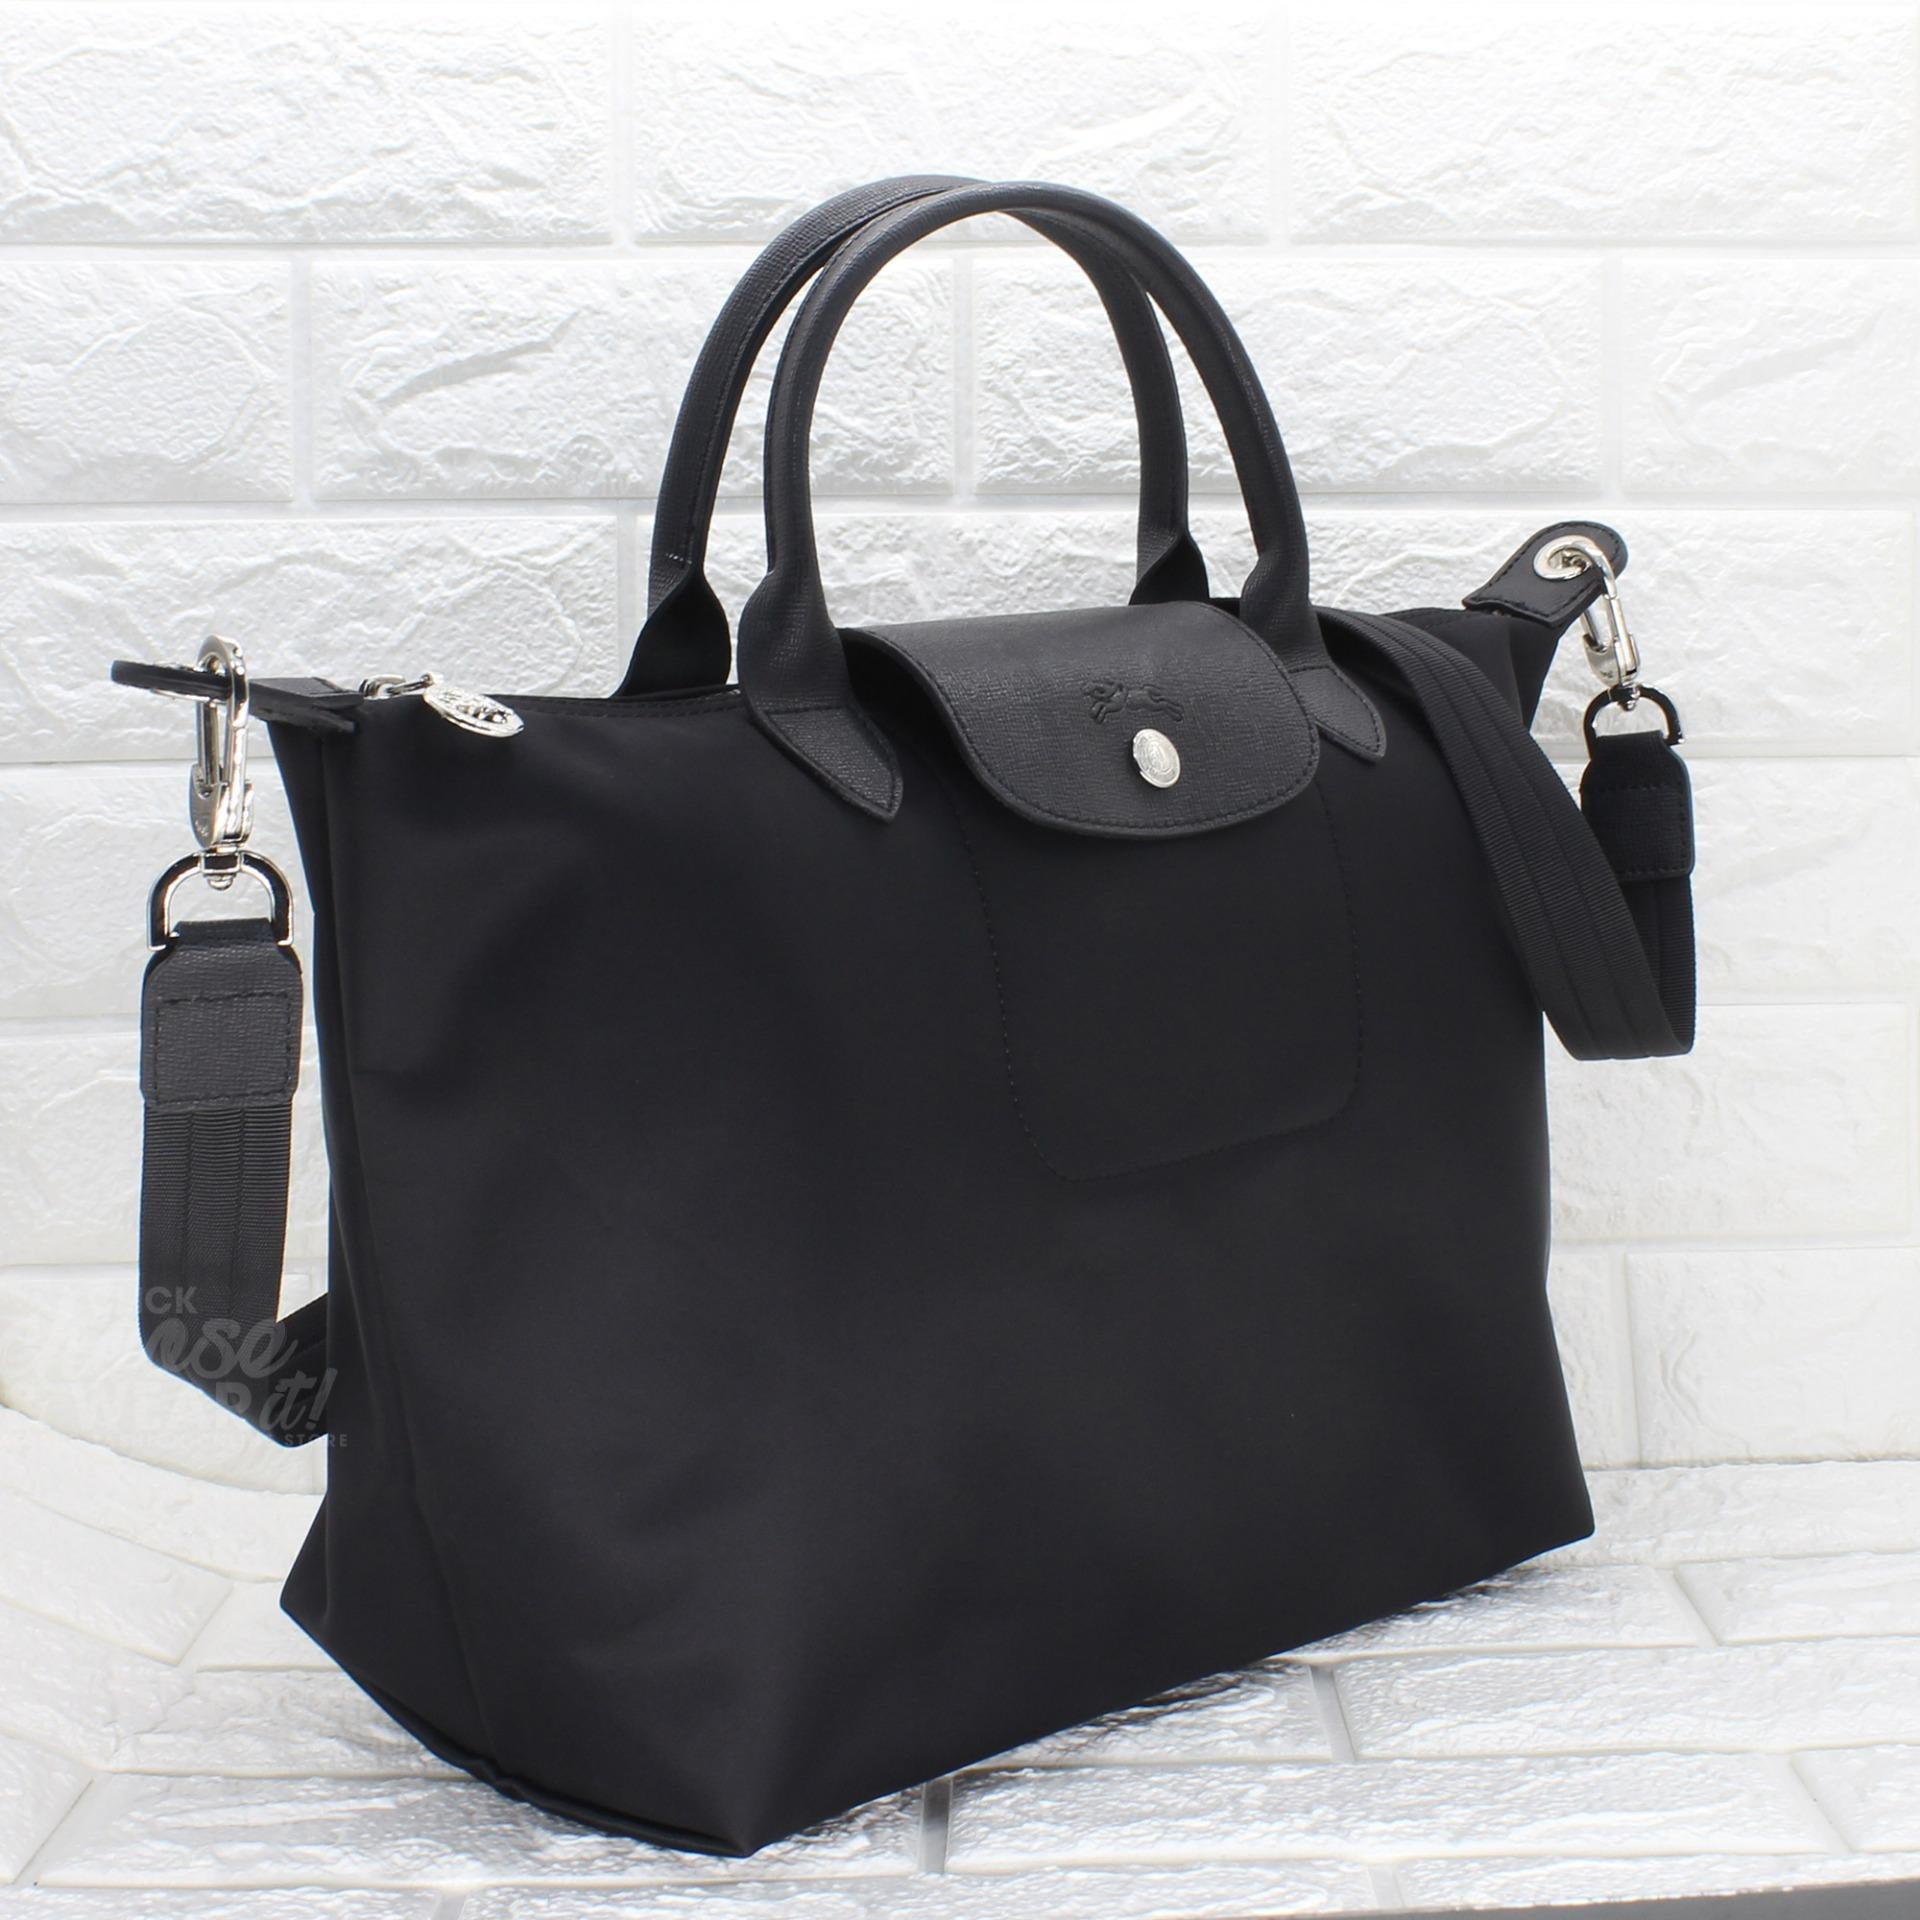 Authentic Longchamp Made in France Medium Le Pliage Neo Top Handle Tote -  Black 9095bccffe8b3